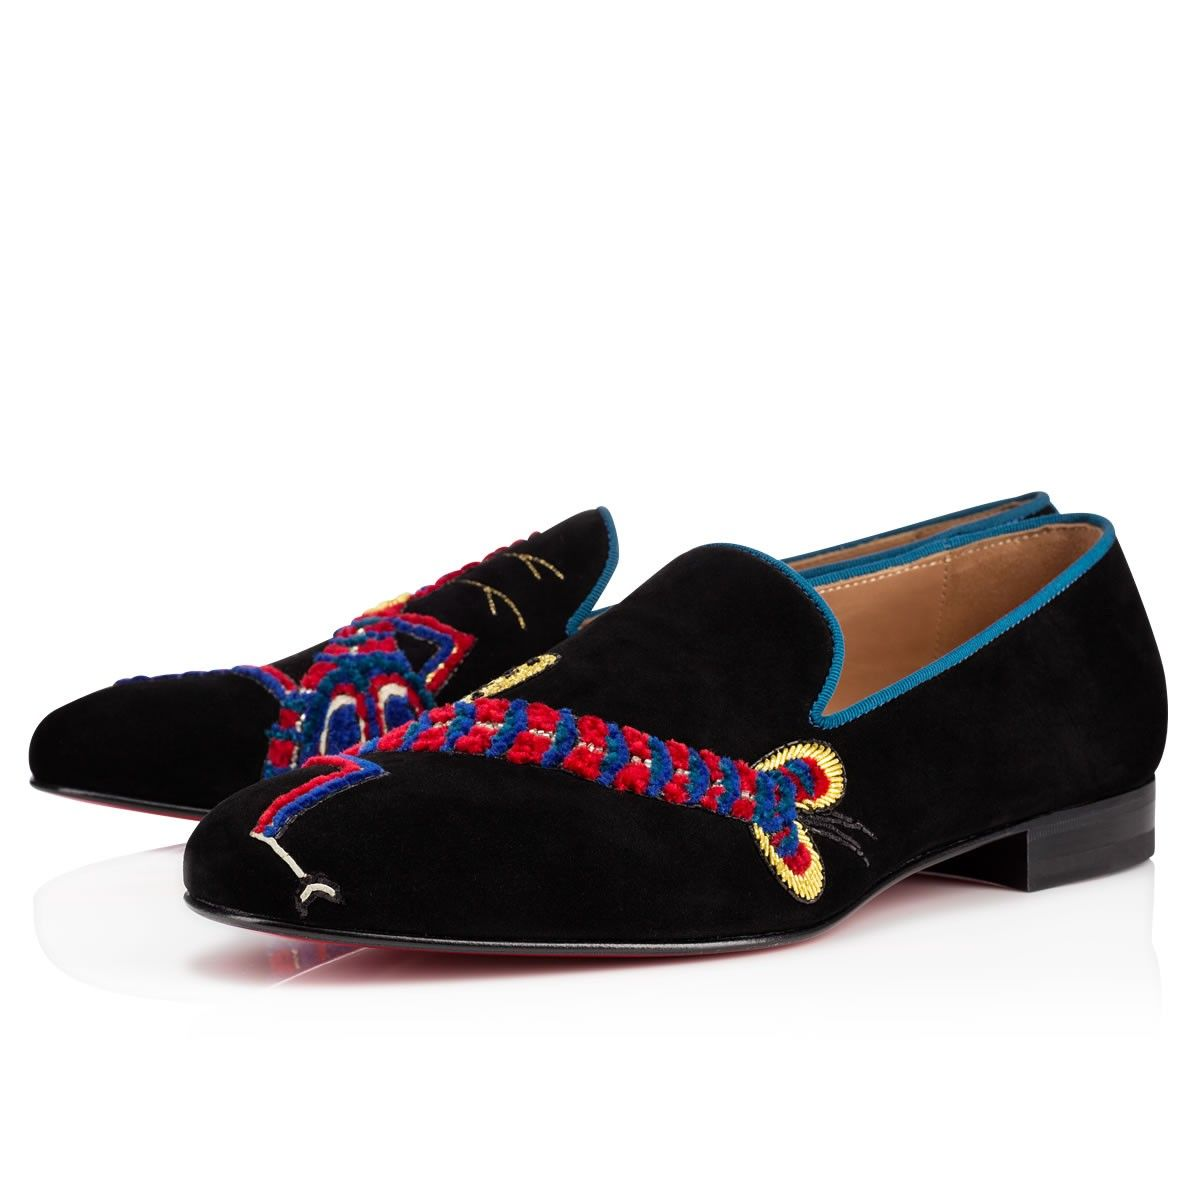 Christian Louboutin Menu0027s Shoes and Leather Goods